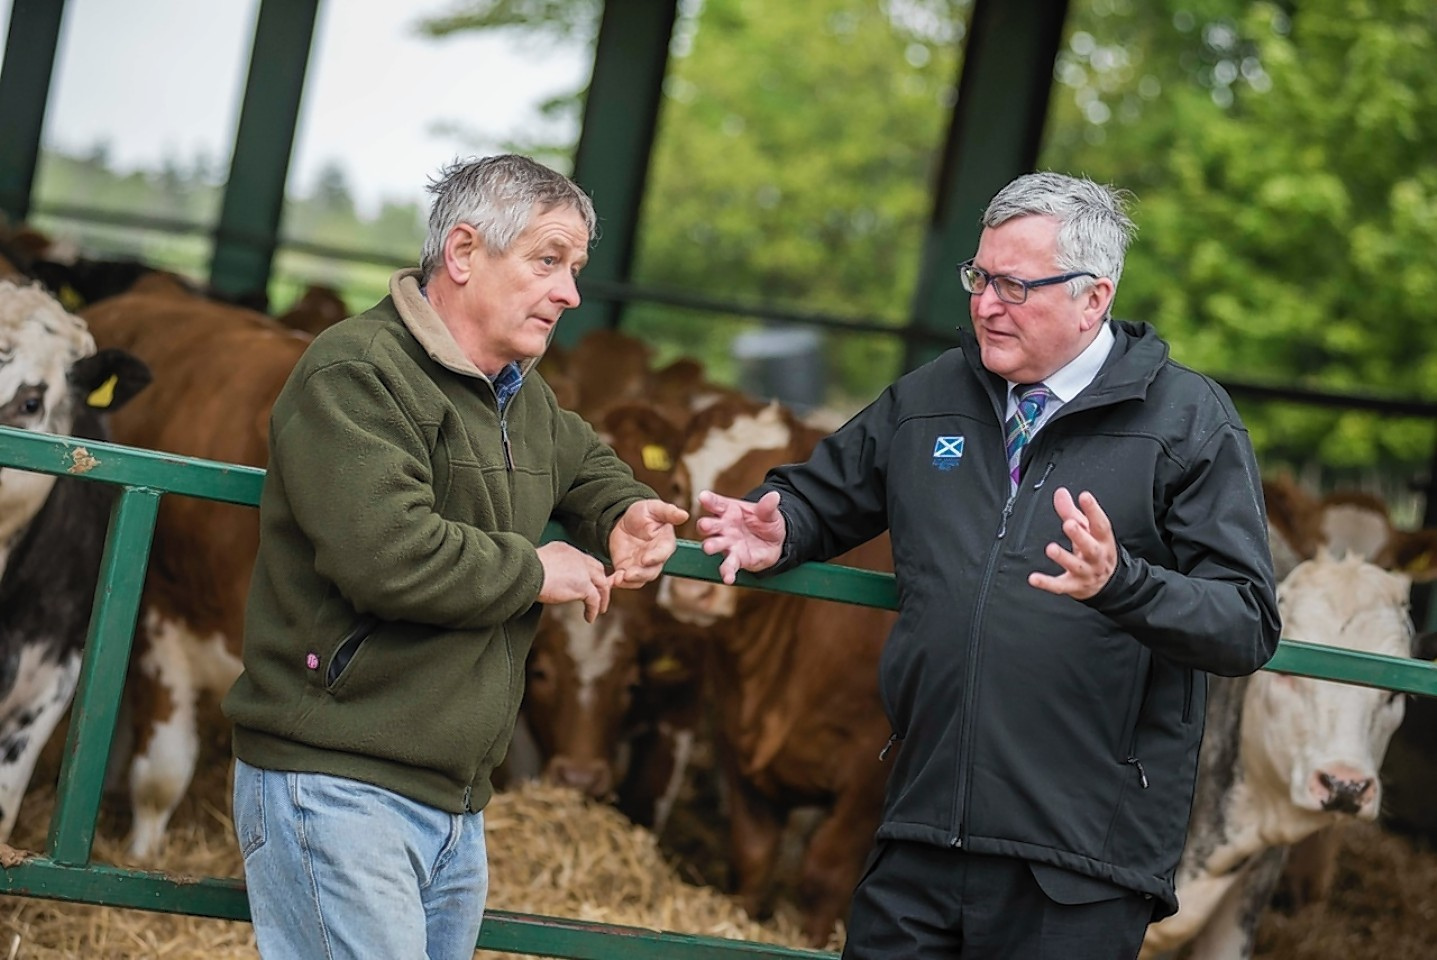 Farmers faced lengthy delays for the EU Common Agricultural Policy (CAP) subsidies following problems with the £178 million Scottish Government IT system set up to administer them.